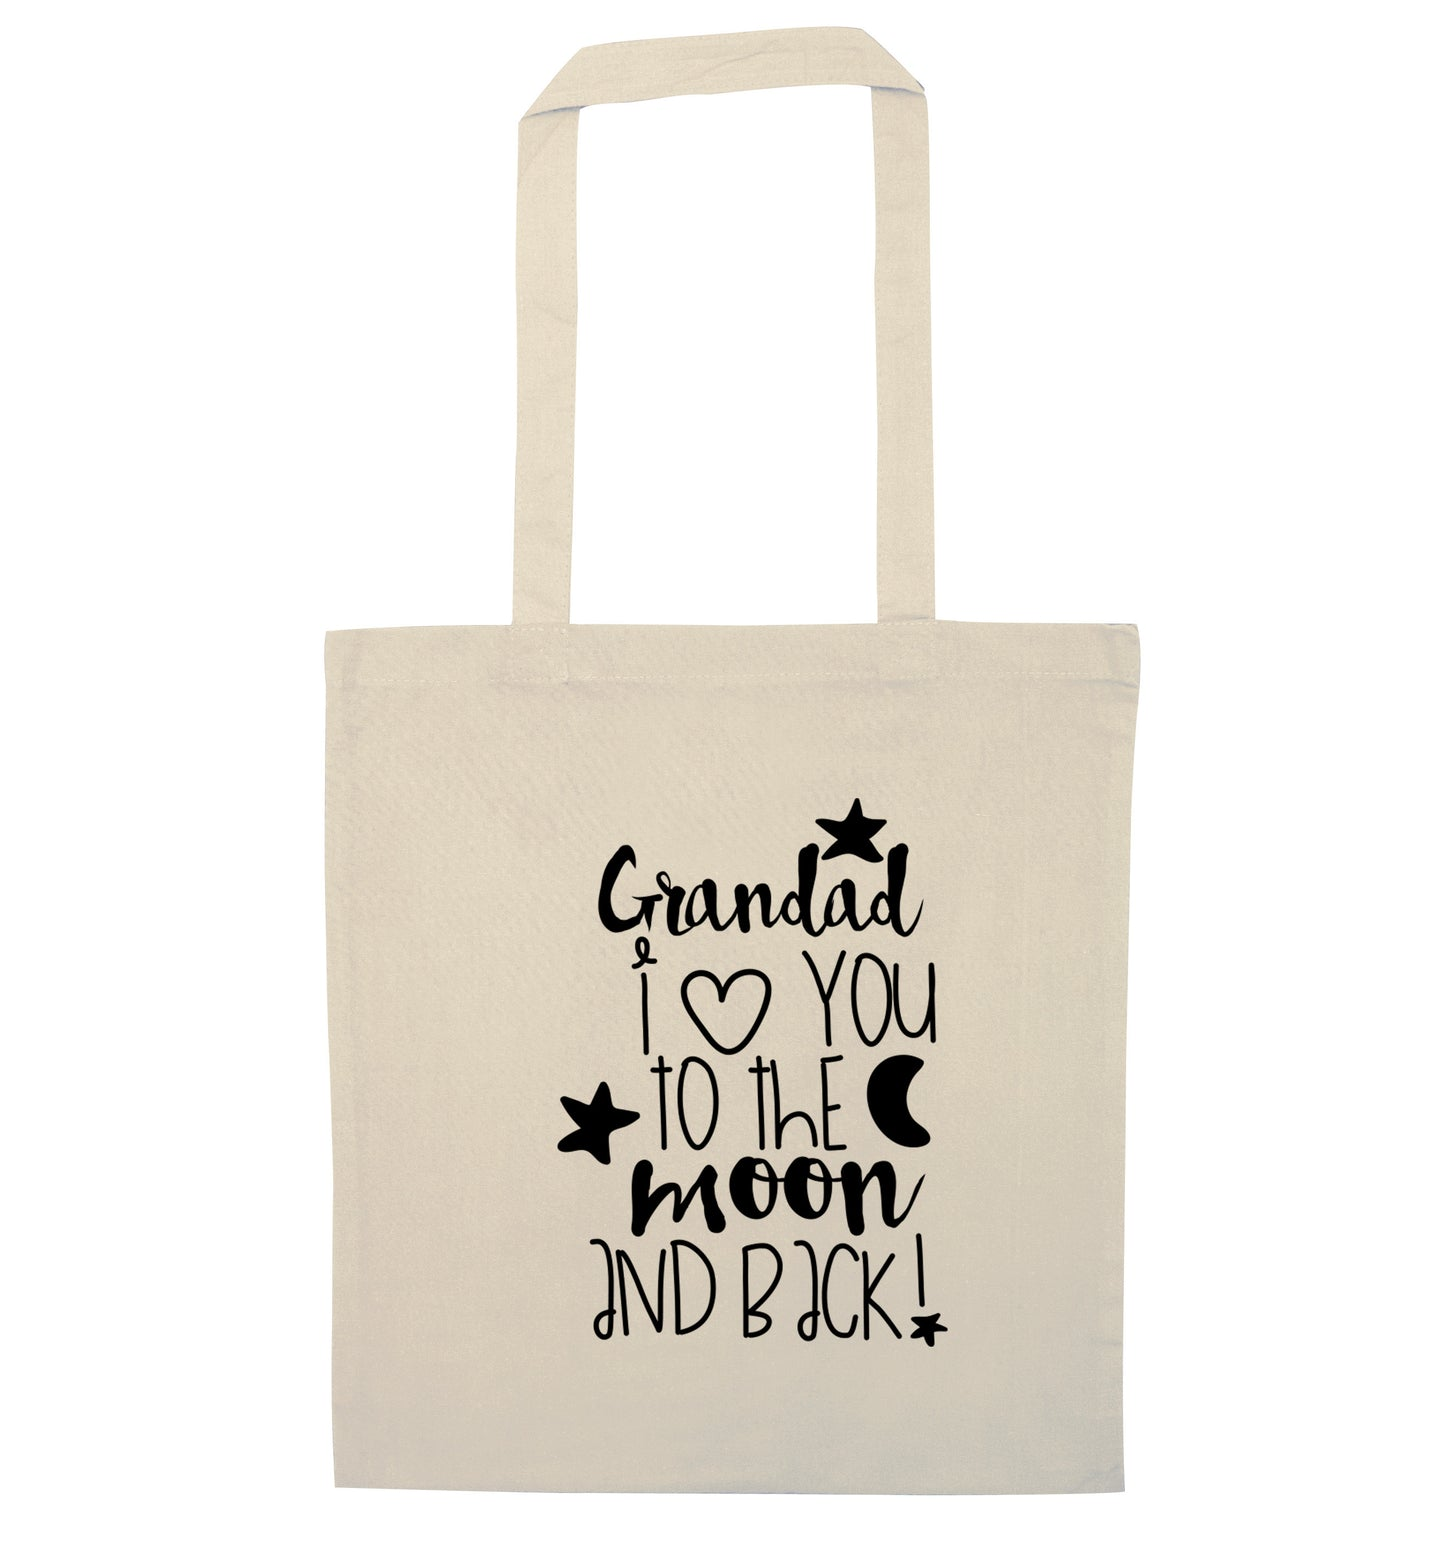 Grandad's I love you to the moon and back natural tote bag